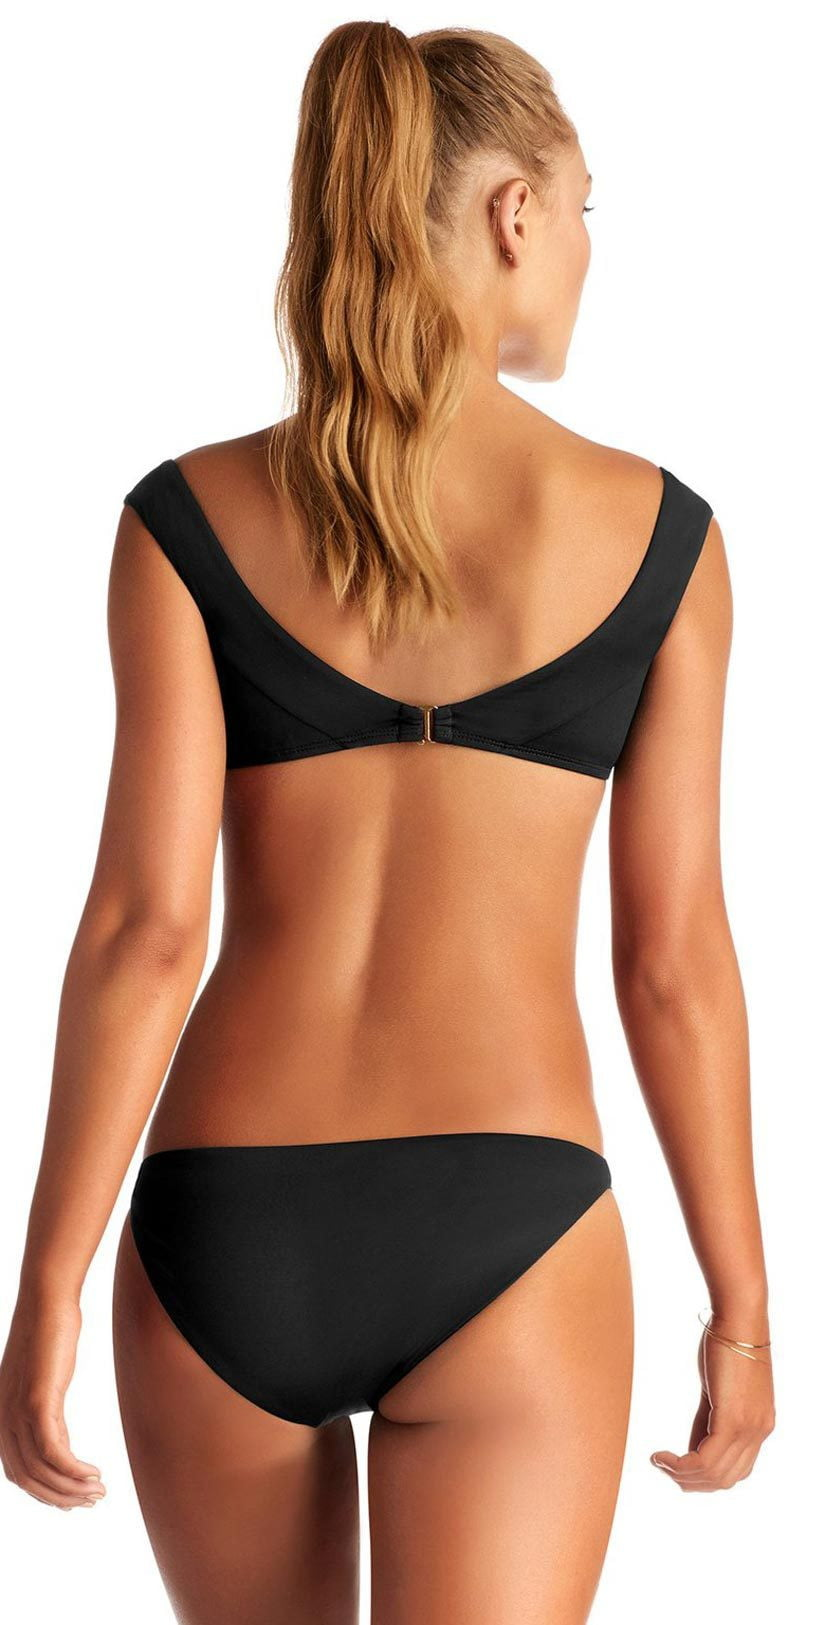 Vitamin A Capri EcoLux Top in Black 88T ECB: